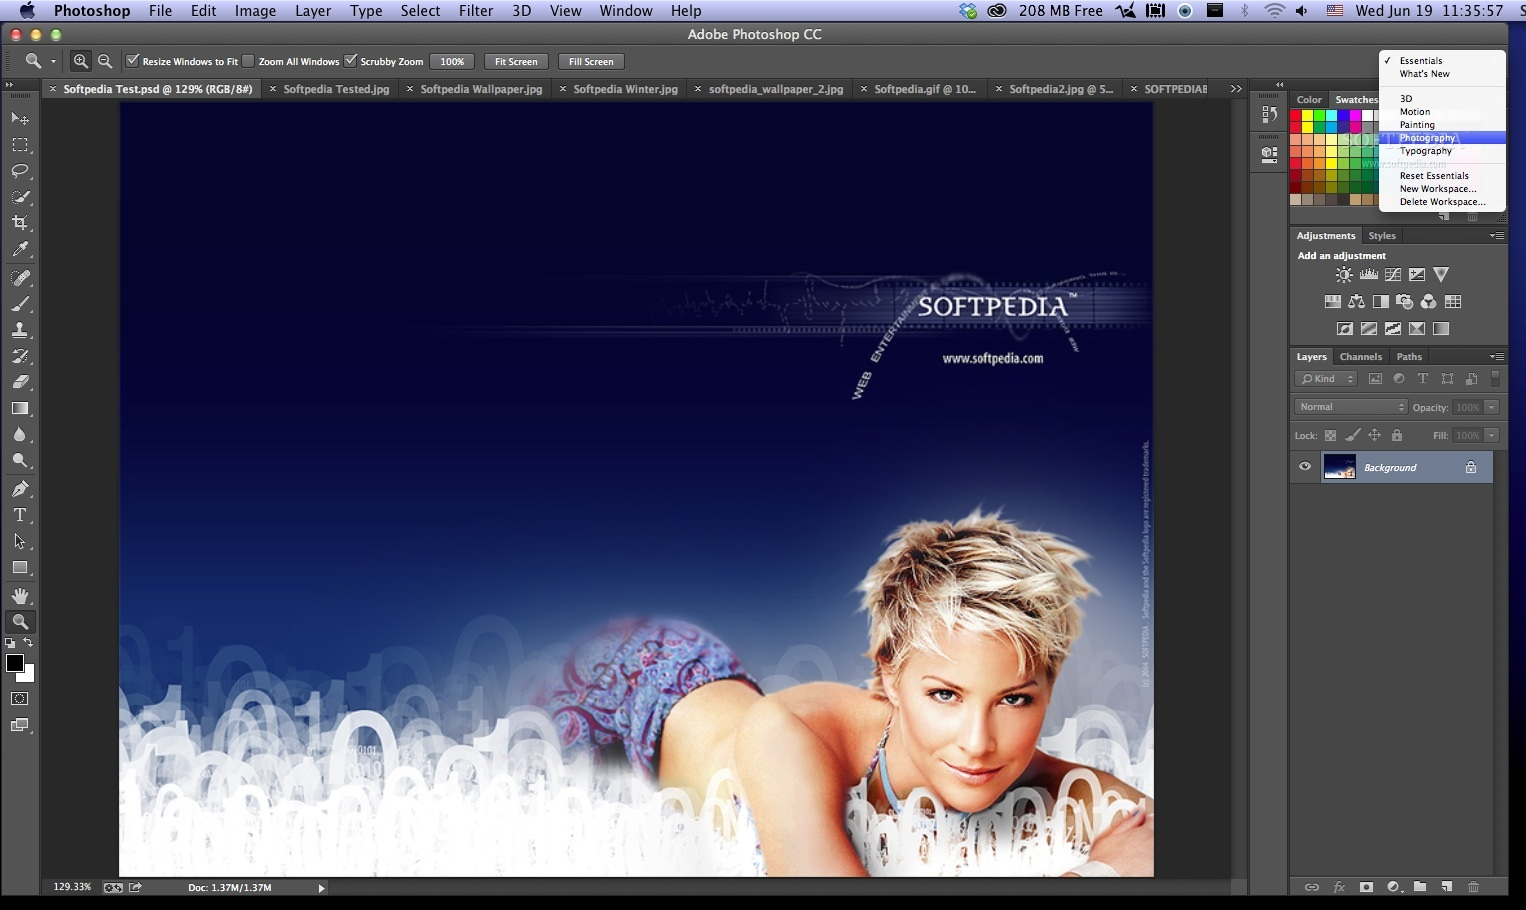 Adobe Photoshop screenshot 2